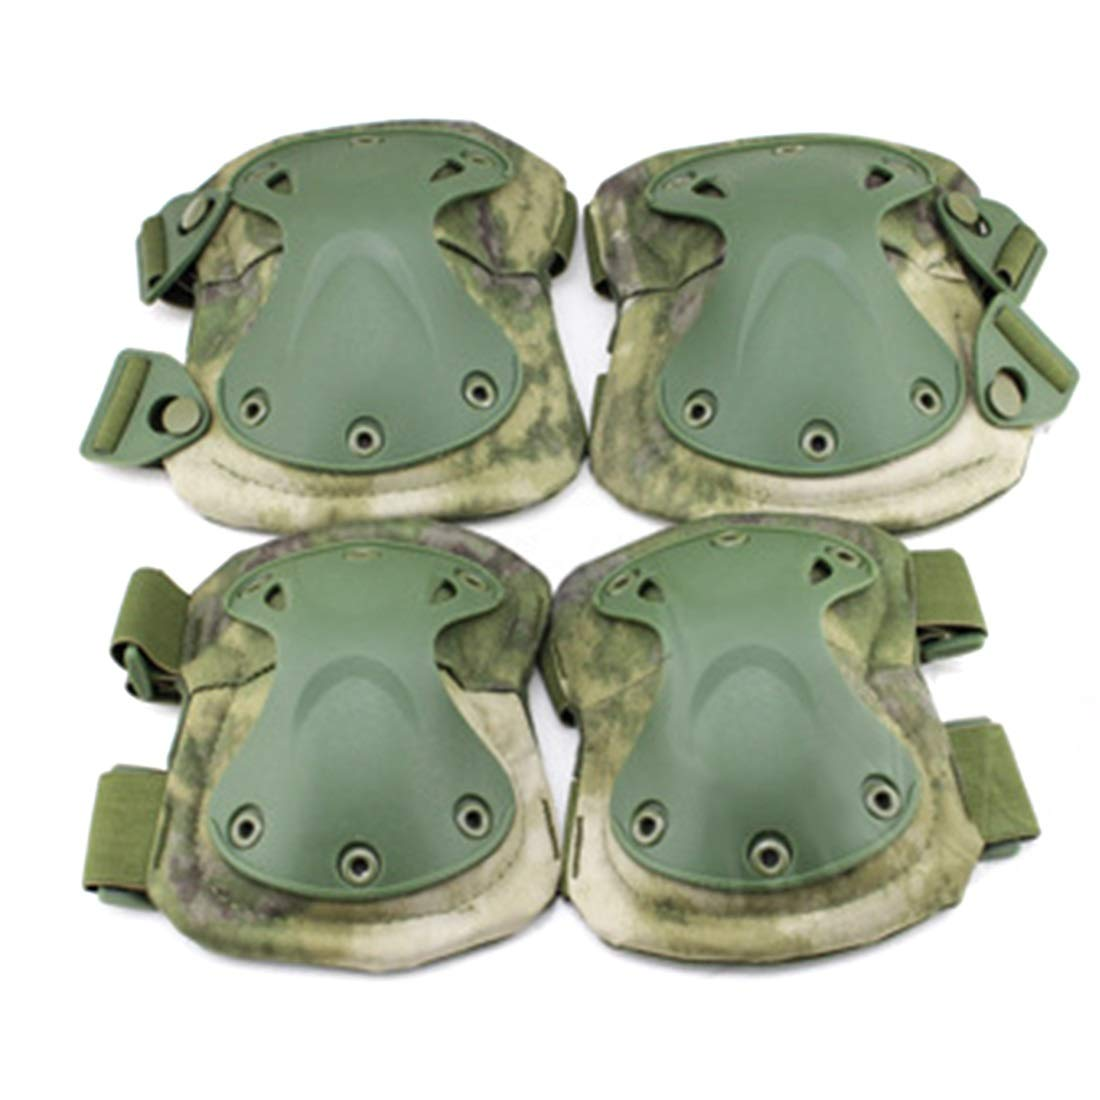 AIYAMAYA EVA Protective Gear Outdoor Riding Hiking Knee Pads Elbow Suit Field Tactical Equipment Knee Pads Elbow Suit (Style : A-TACS-FG (PA-03-FG))